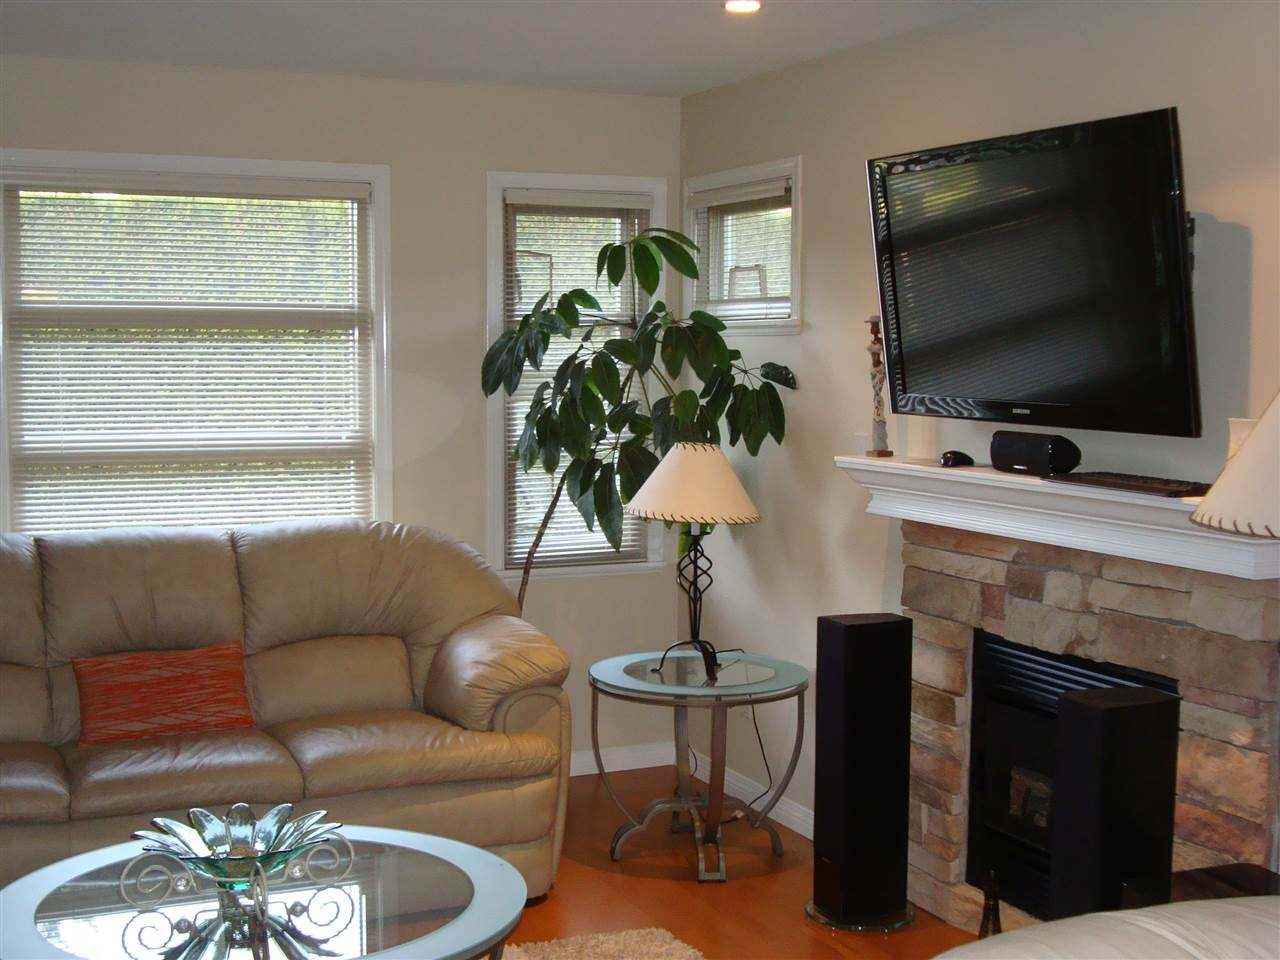 Photo 3: 7562 16TH Avenue in Burnaby: Edmonds BE House 1/2 Duplex for sale (Burnaby East)  : MLS® # R2022922